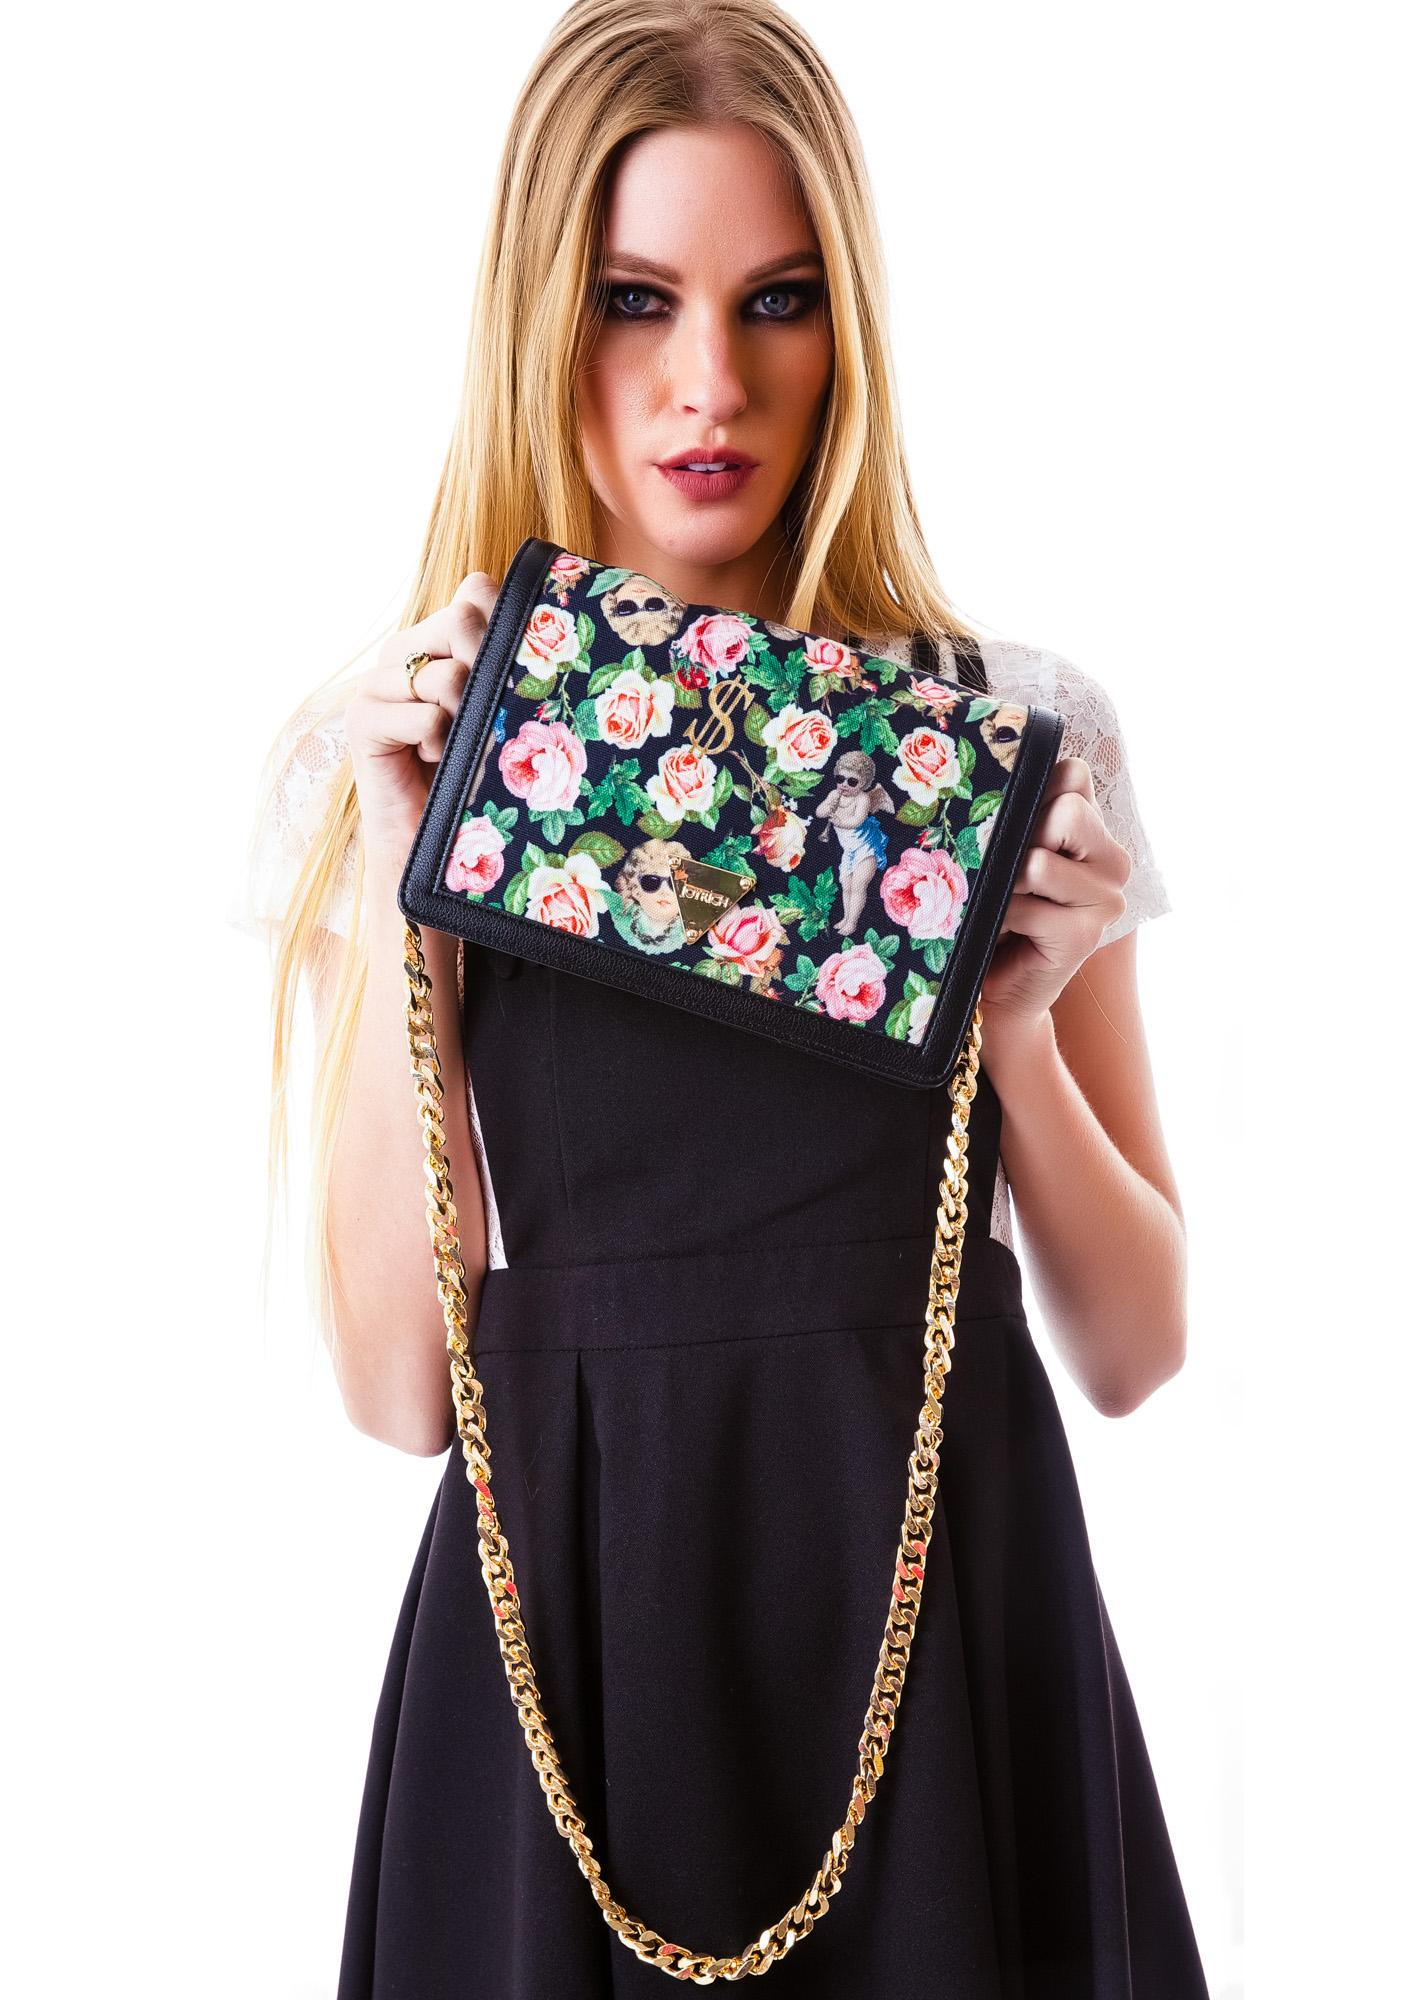 Joyrich Angelic Rich Floral Shoulder Bag